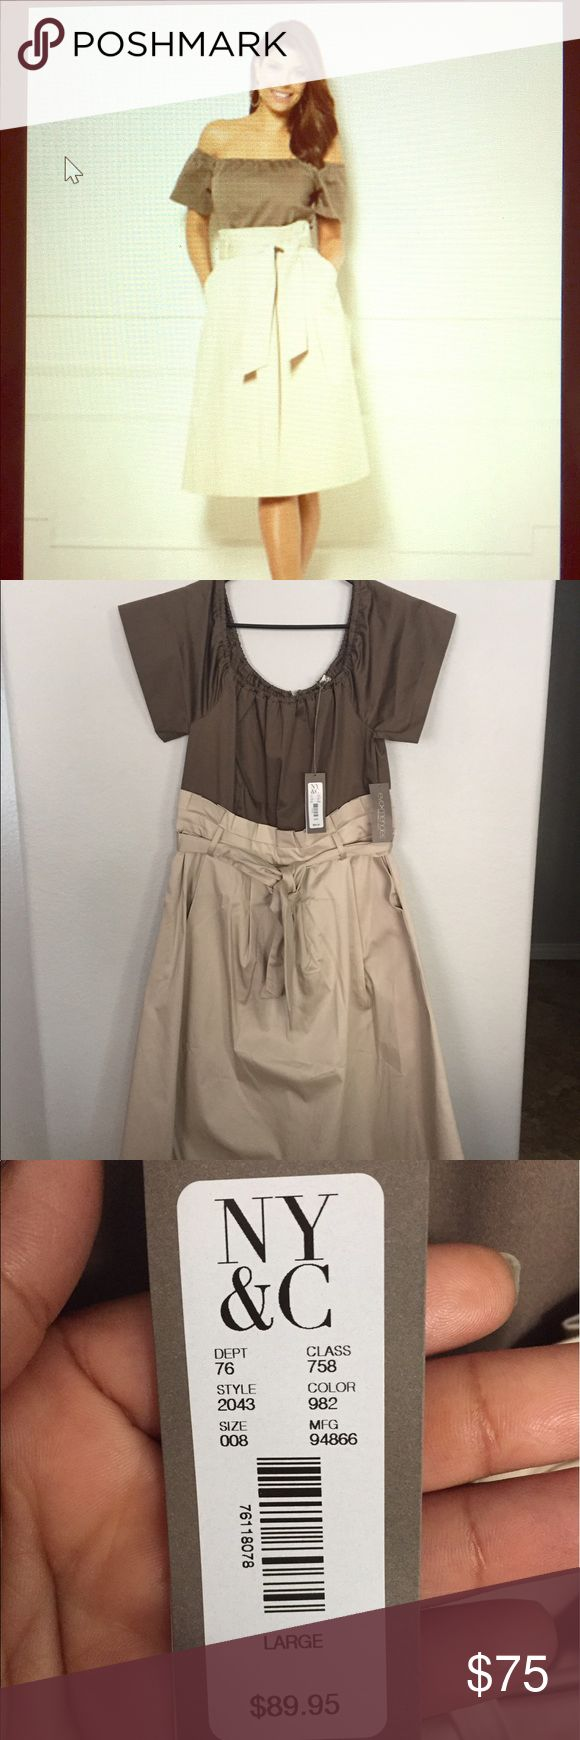 NY&Co dress from Eva Mendes collection Beautiful two-toned beige dress. Can be worn off shoulder and has two pockets with belt. Size L-never worn. Dresses Midi